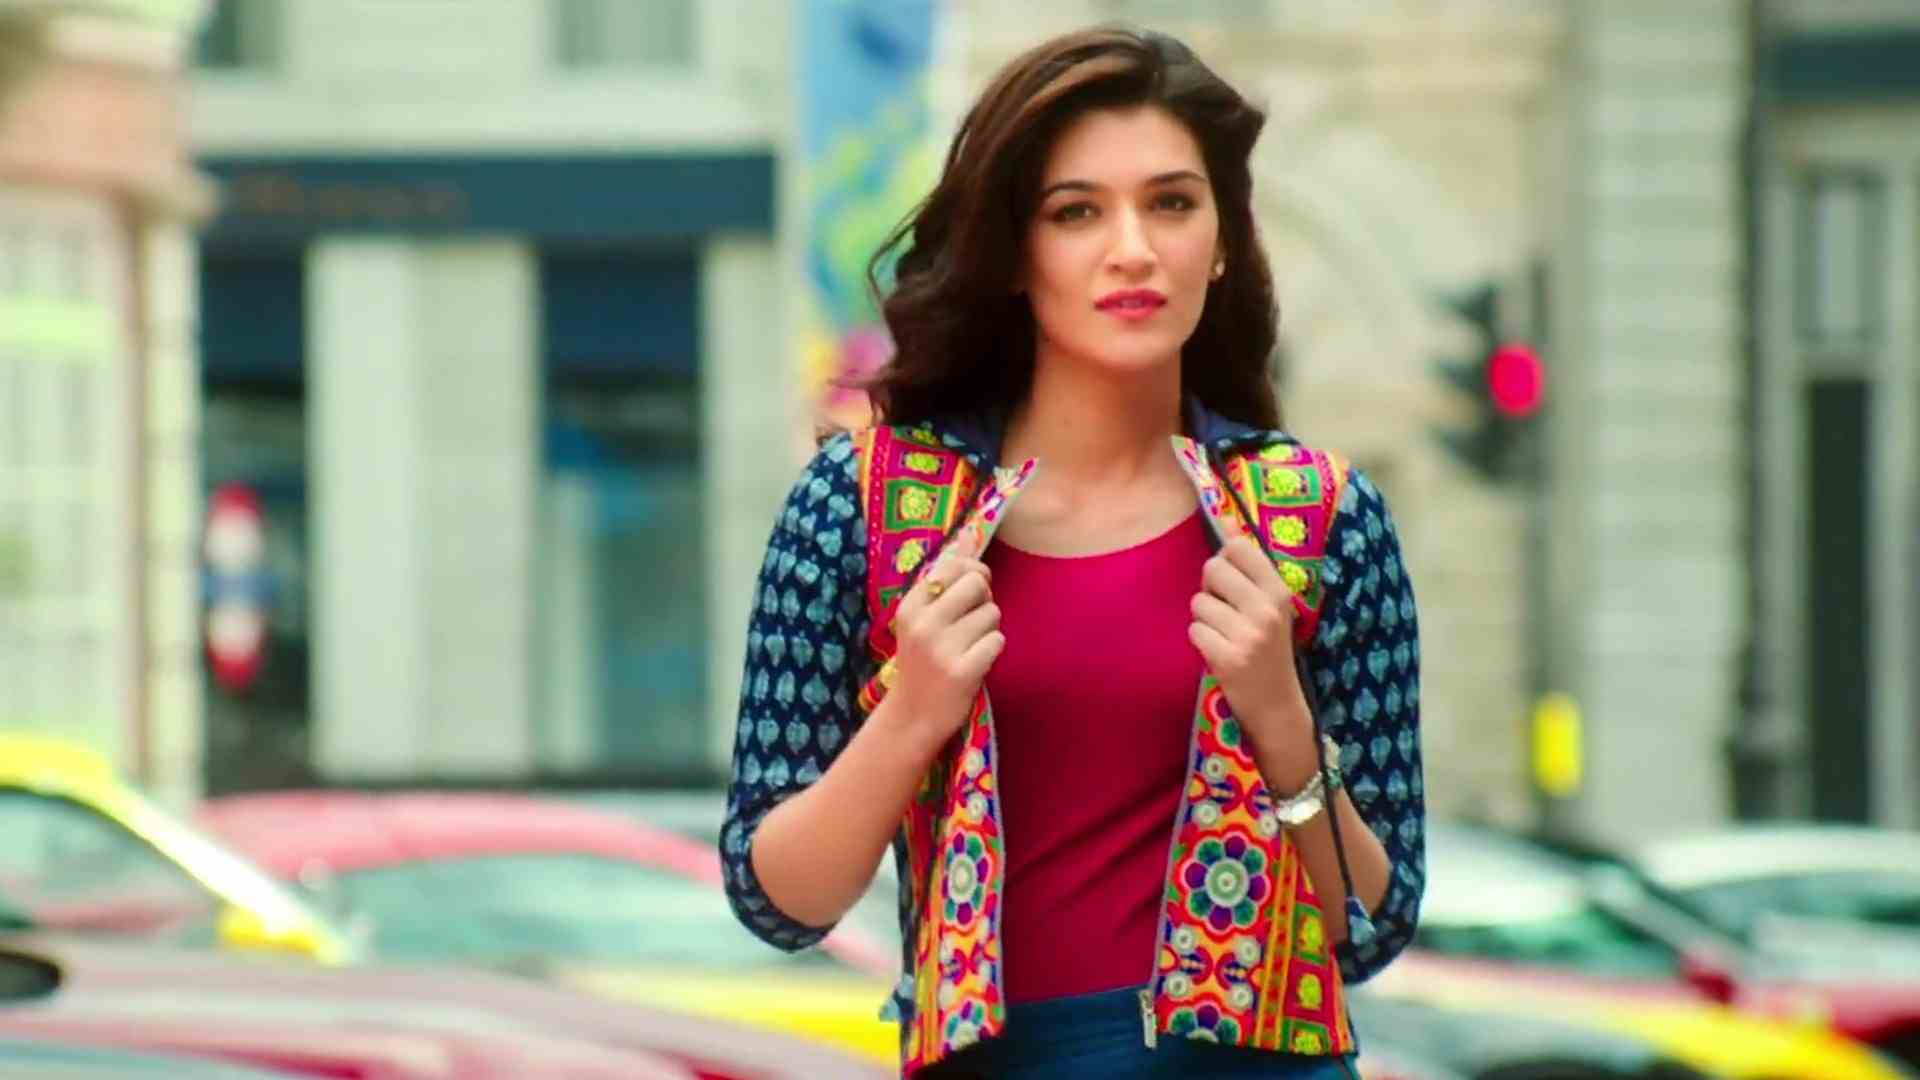 lovely kriti sanon style download laptop free background hd images